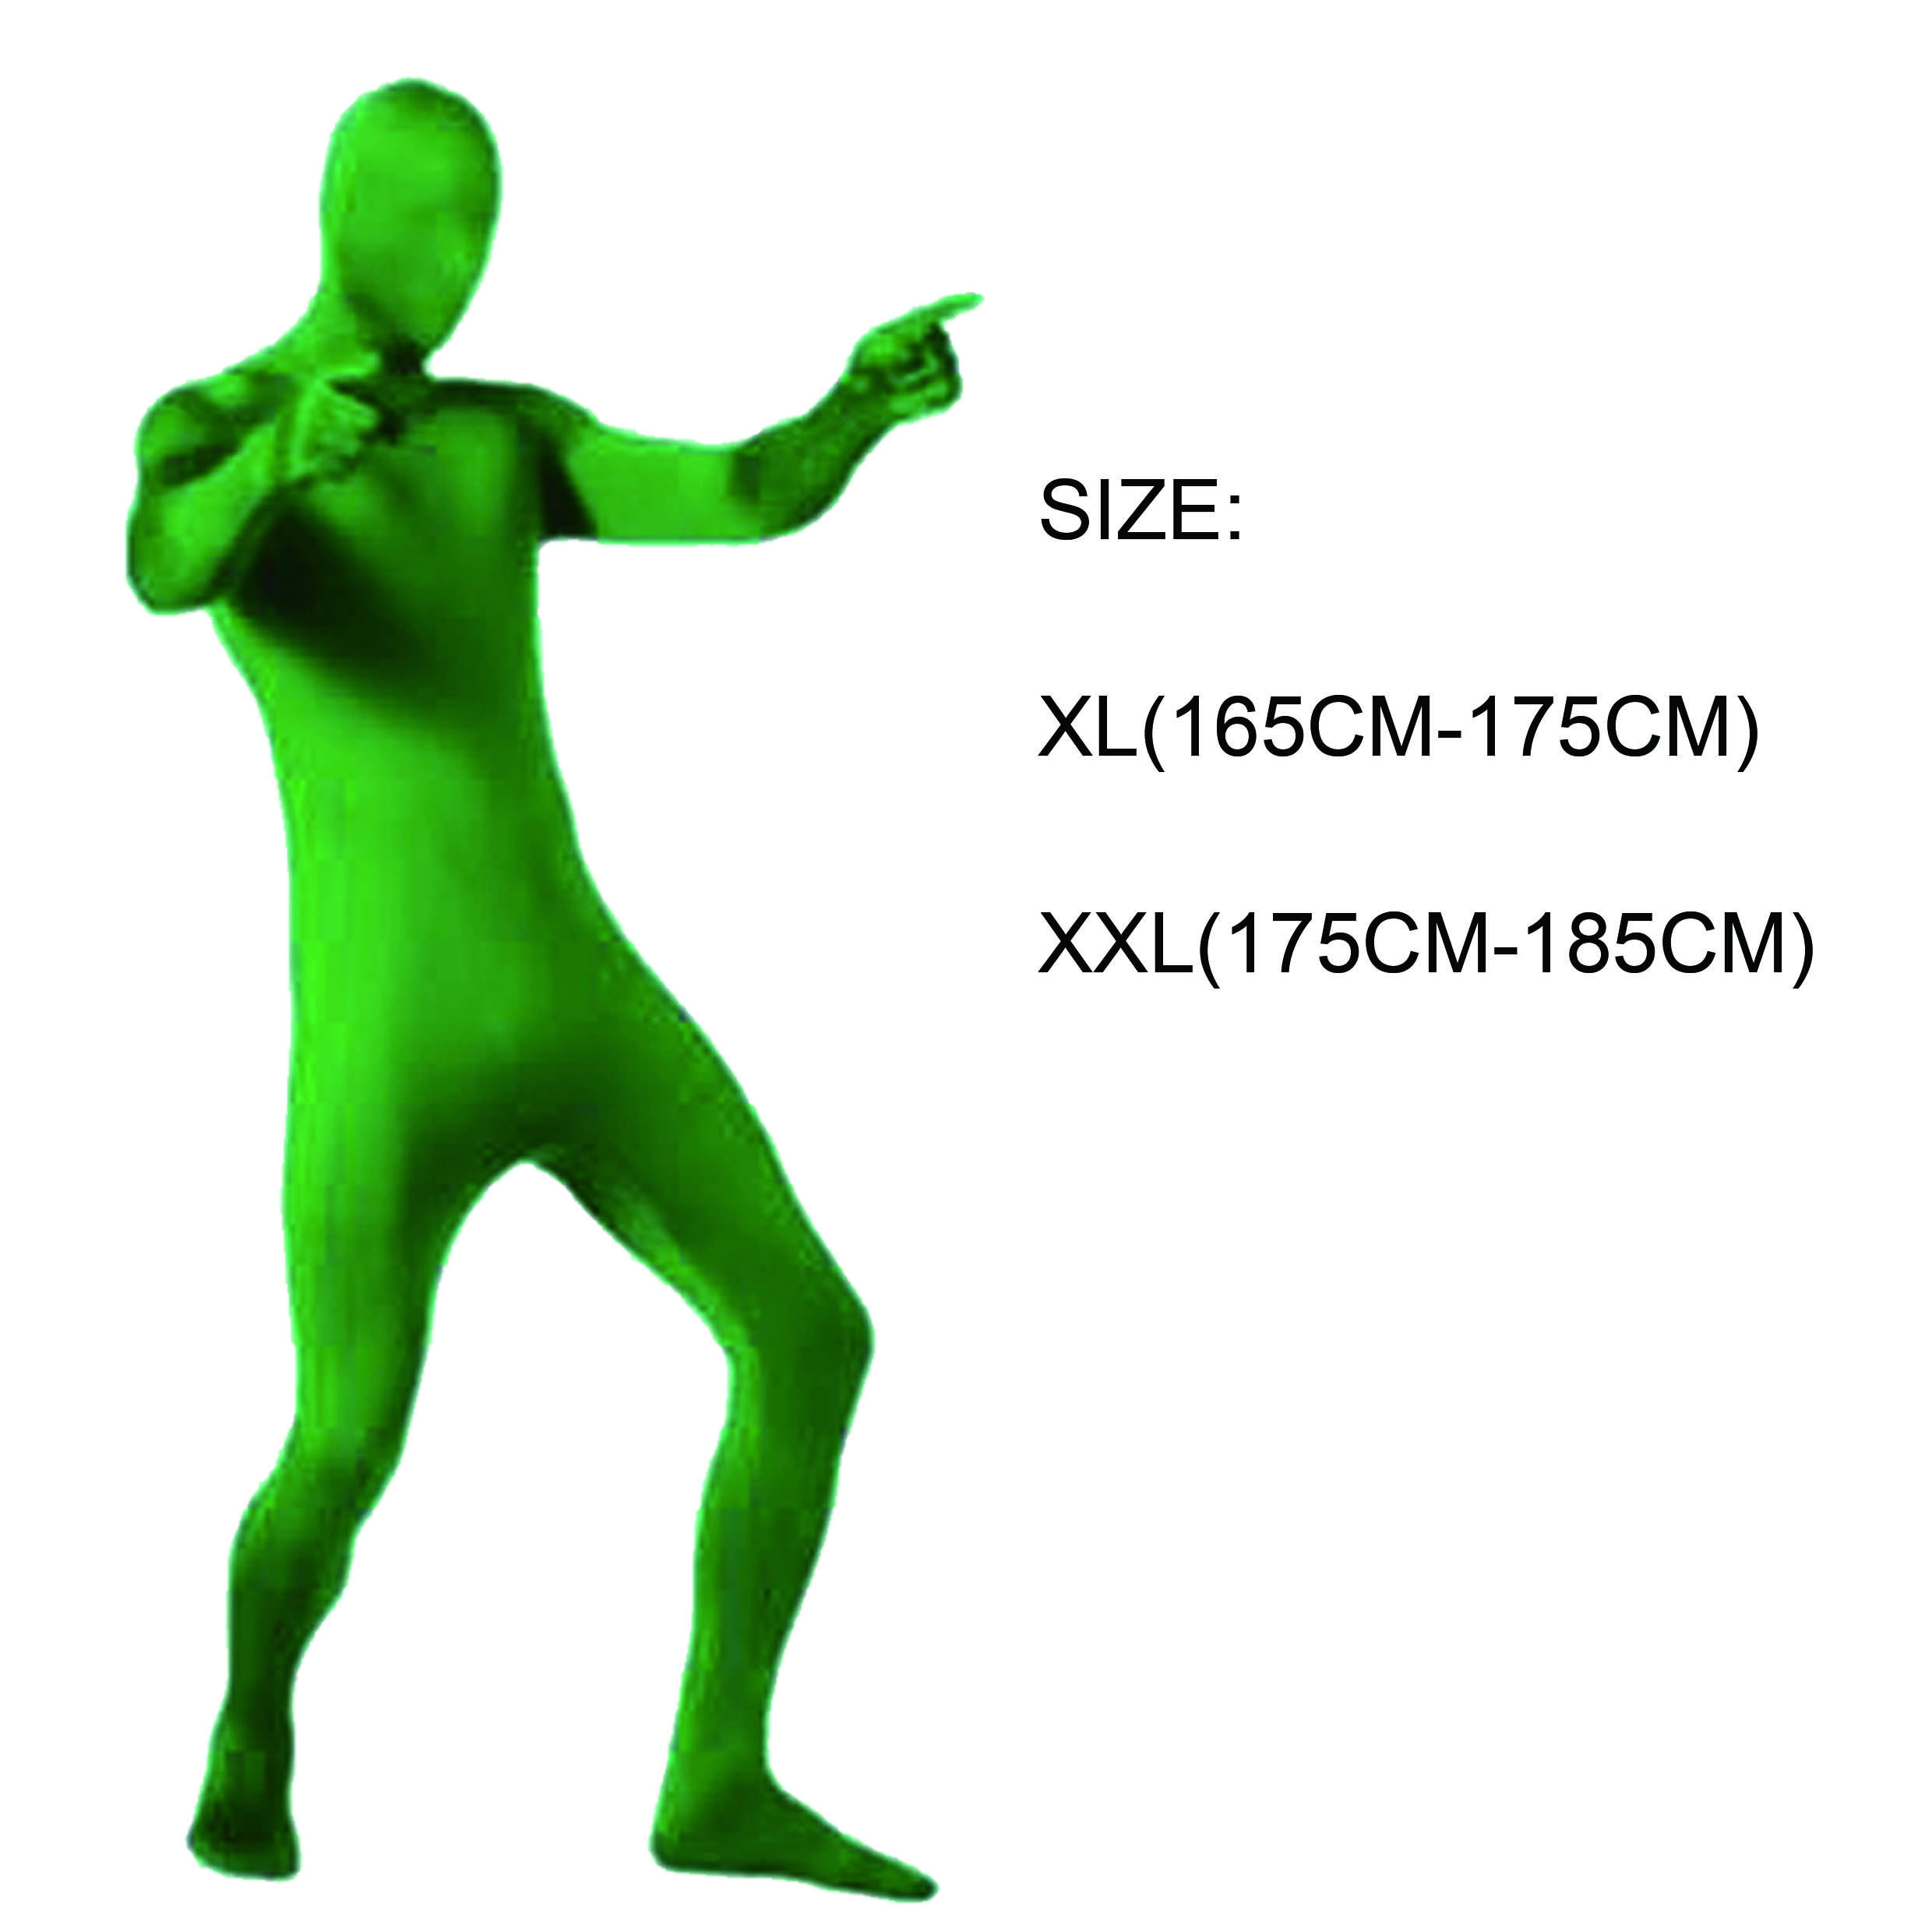 Cape d'invisibilité furtif costumes fond vert Homme Vêtements Invisible costume de corps